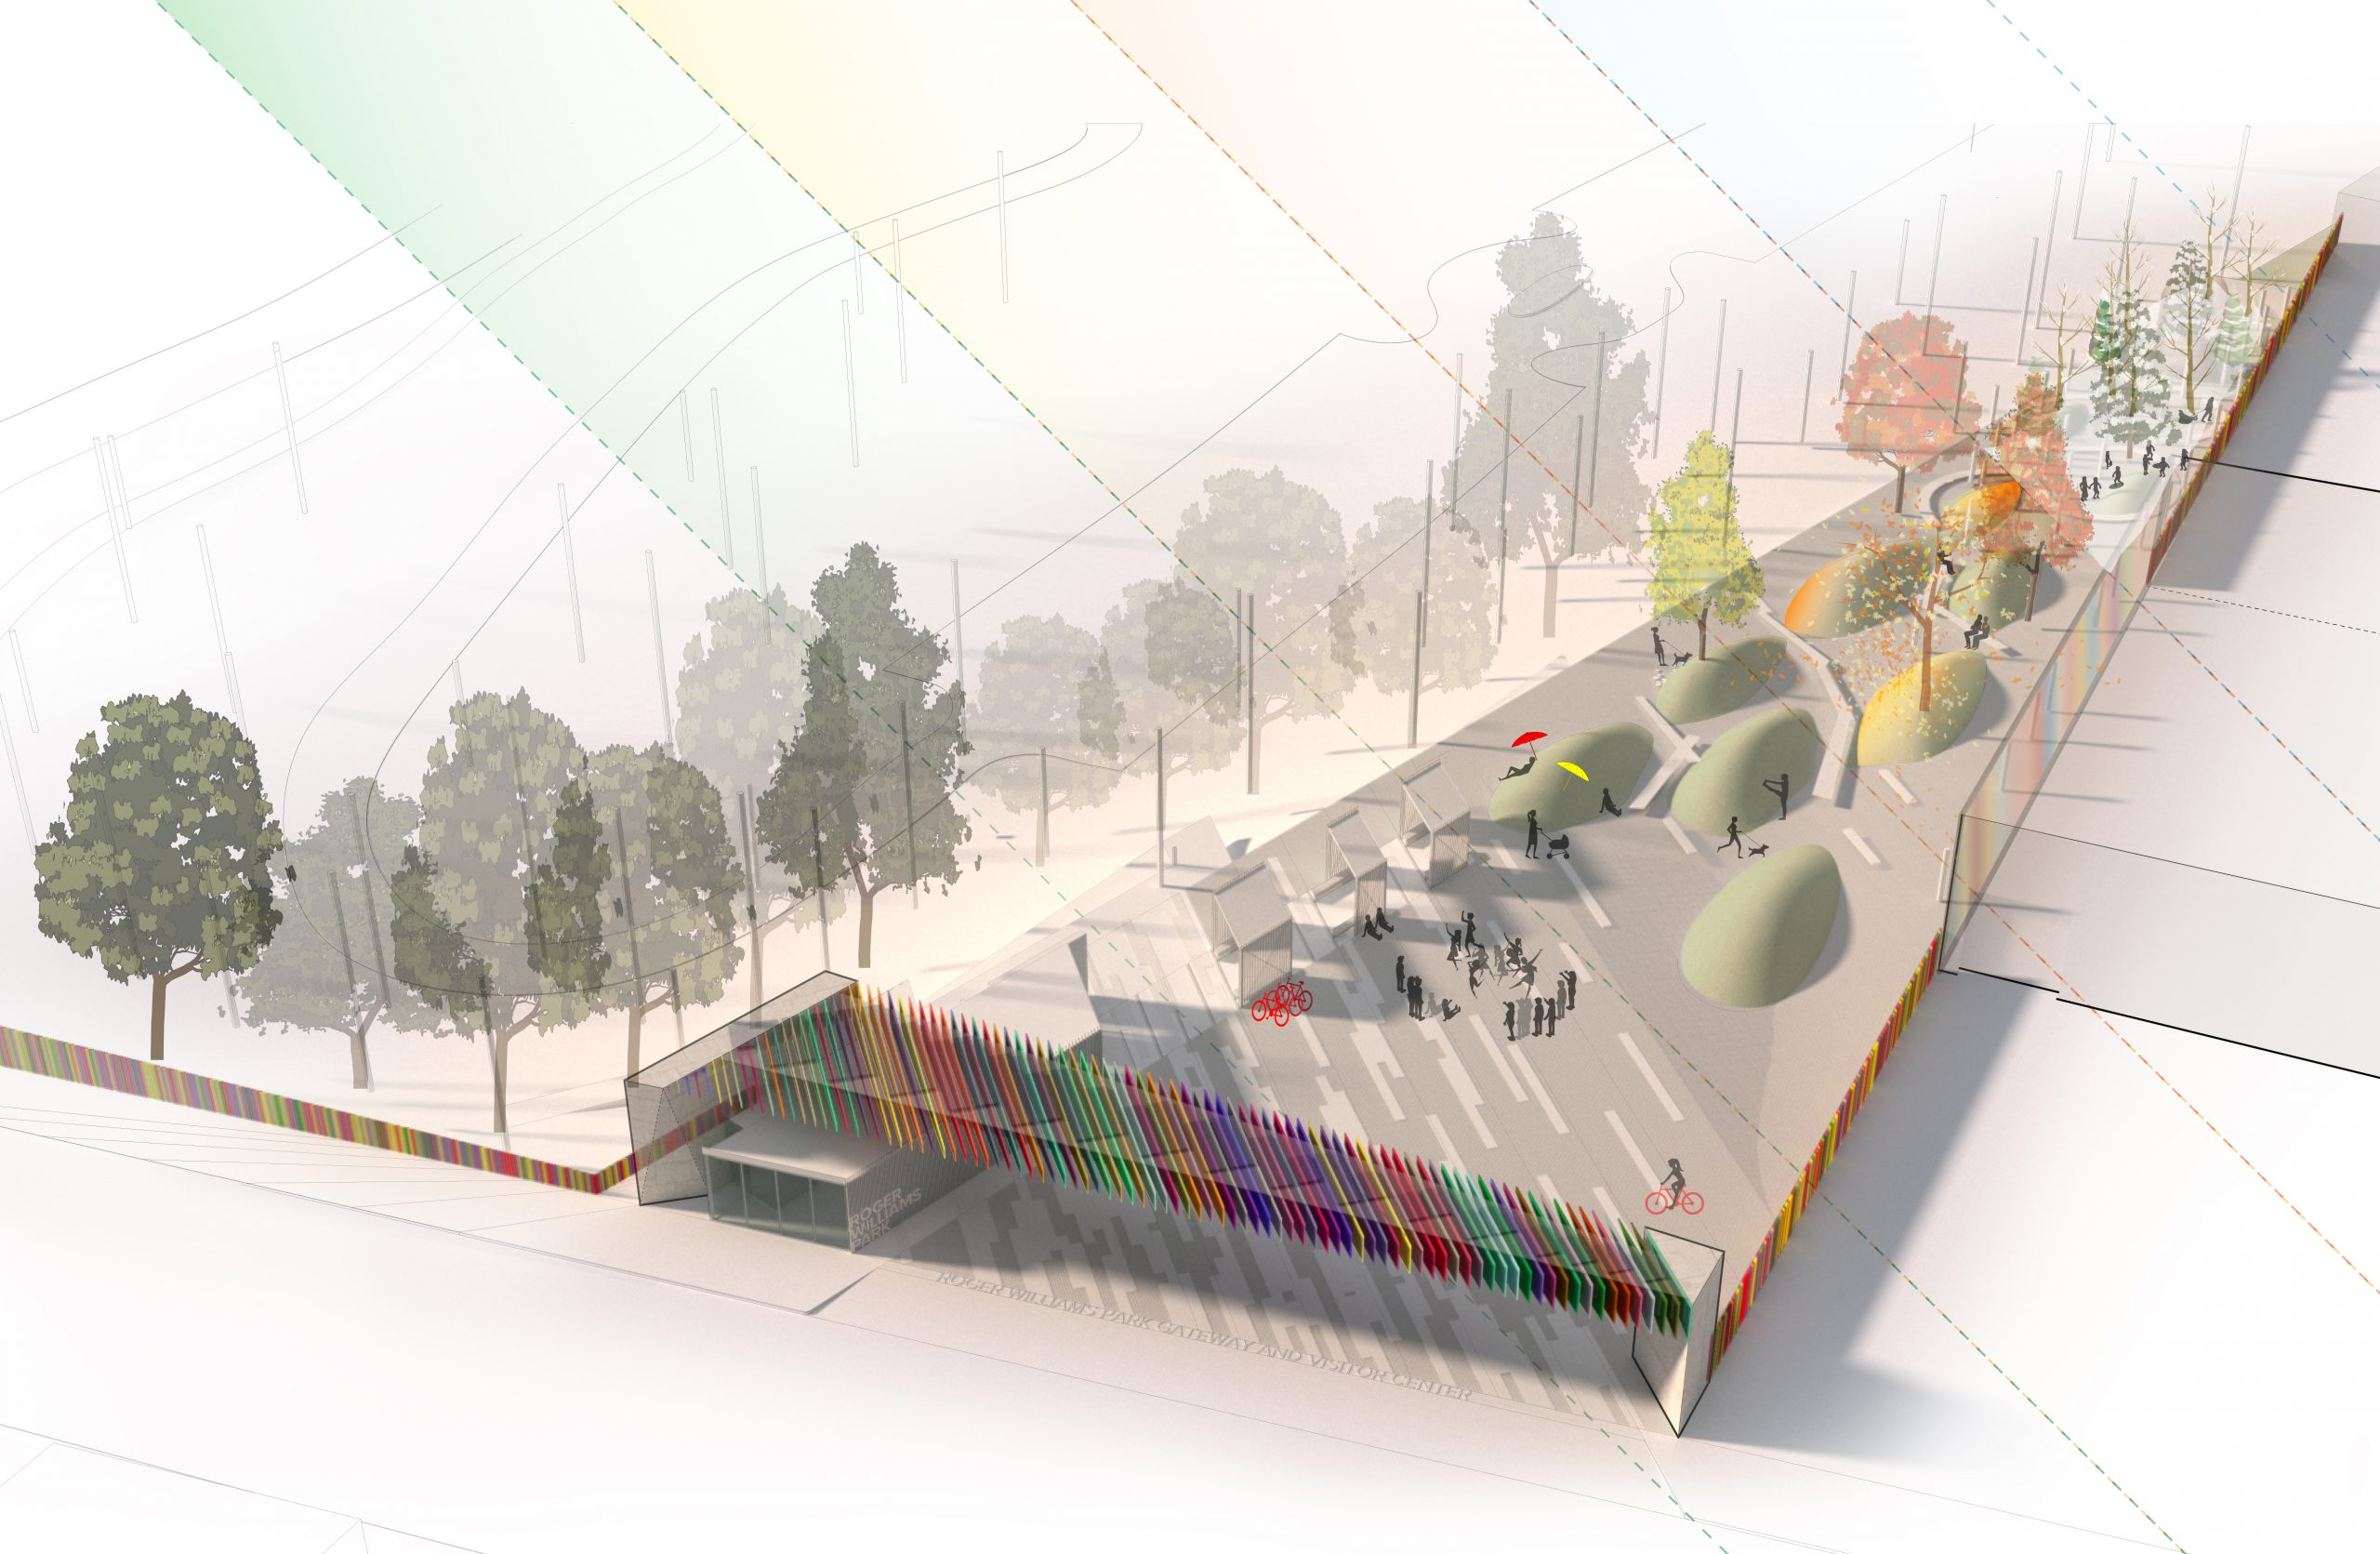 Diagram of seasons in public park of Roger Williams Park Gateway and Visitor's Center Project on Broad Street in Providence Rhode Island Urban Design and Architecture